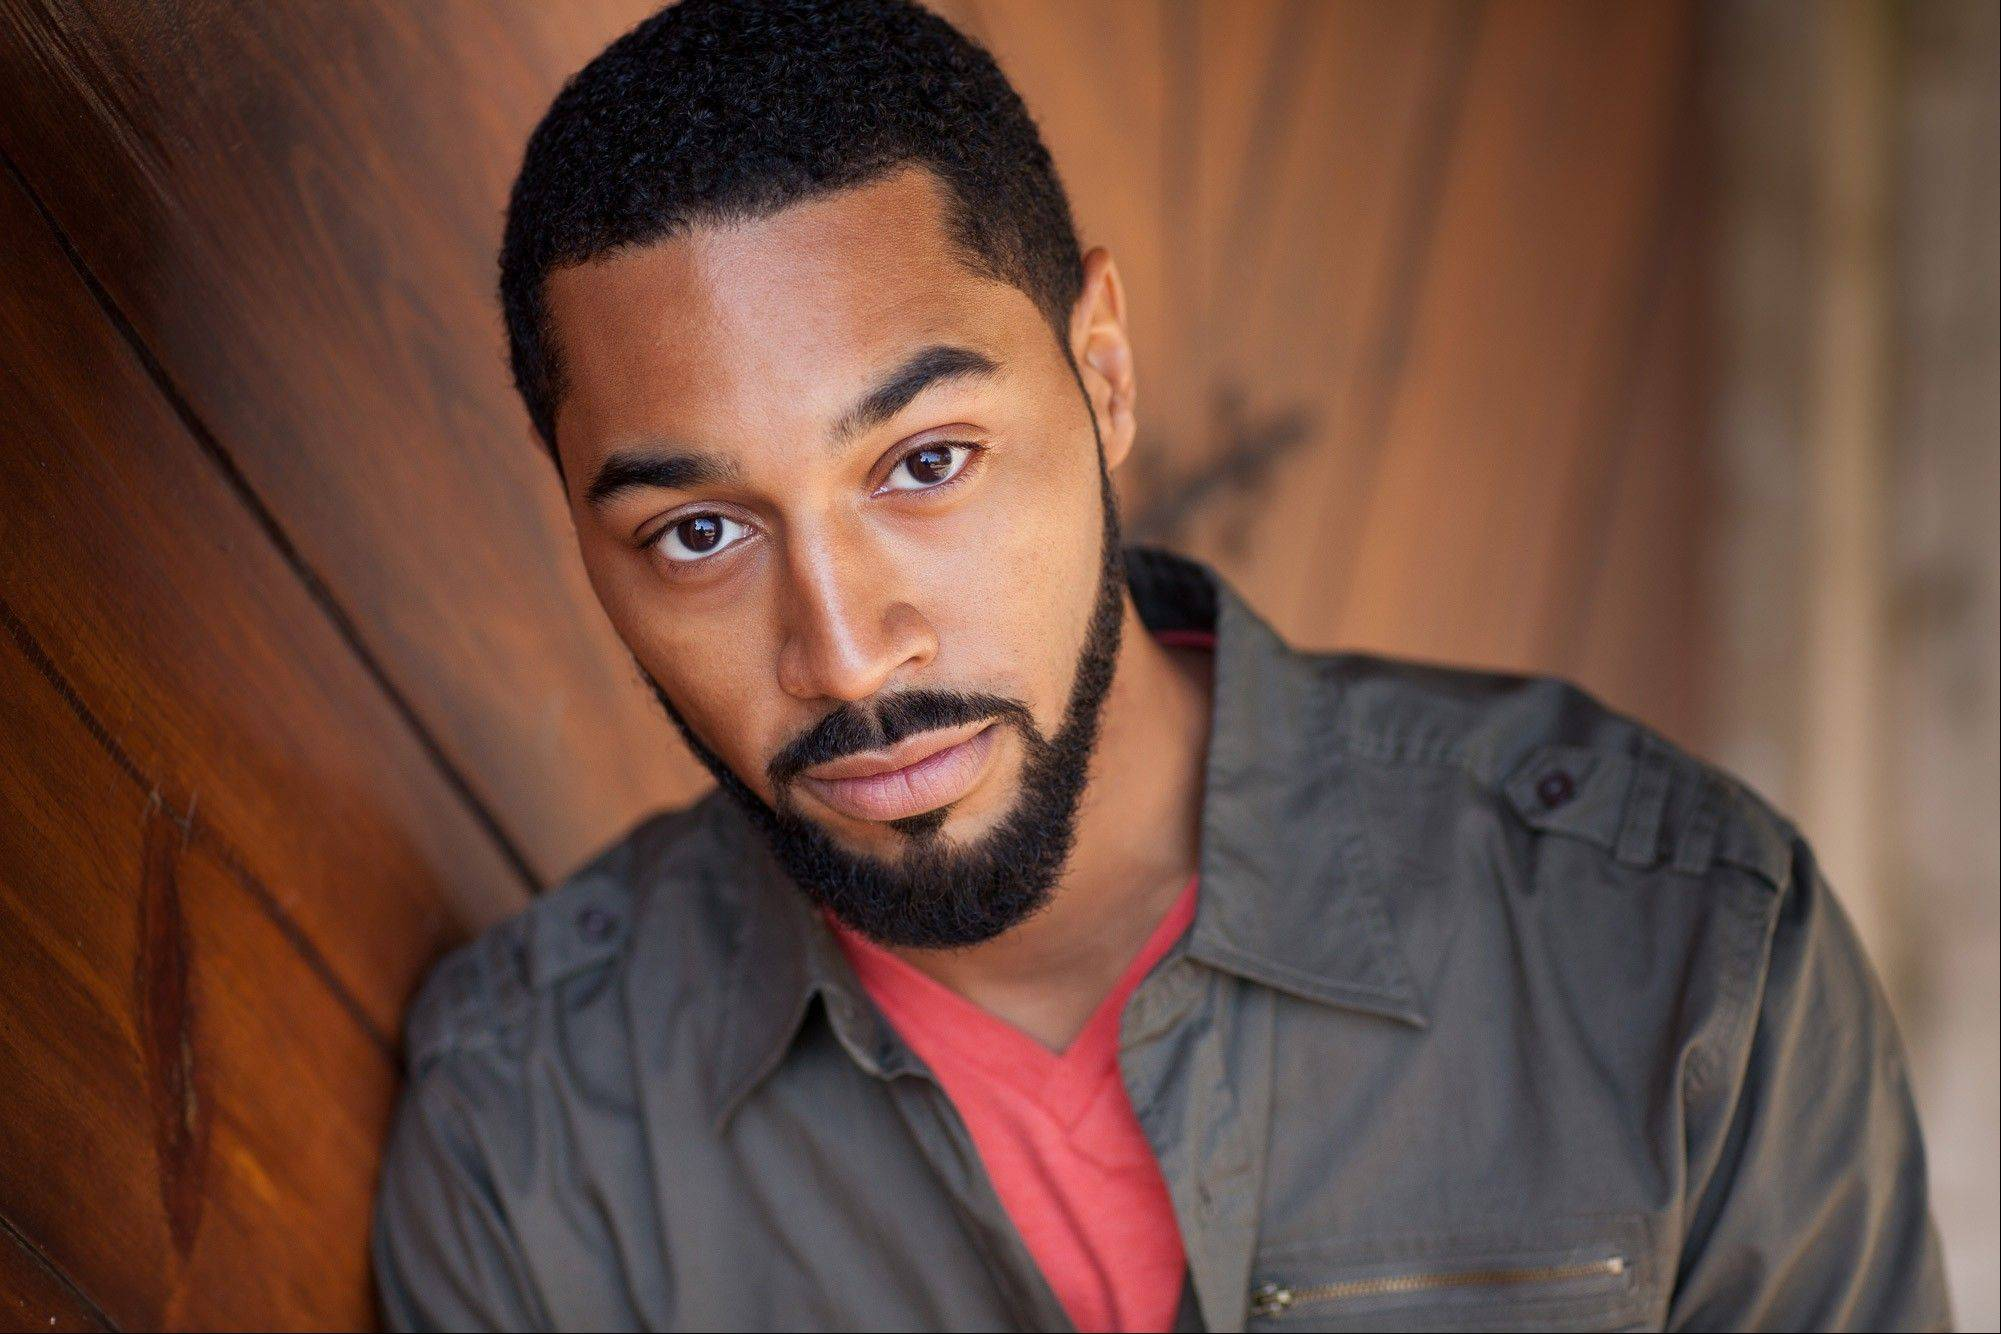 Comedian Tone Bell appears at Zanies Comedy Club in MB Financial Park in Rosemont.